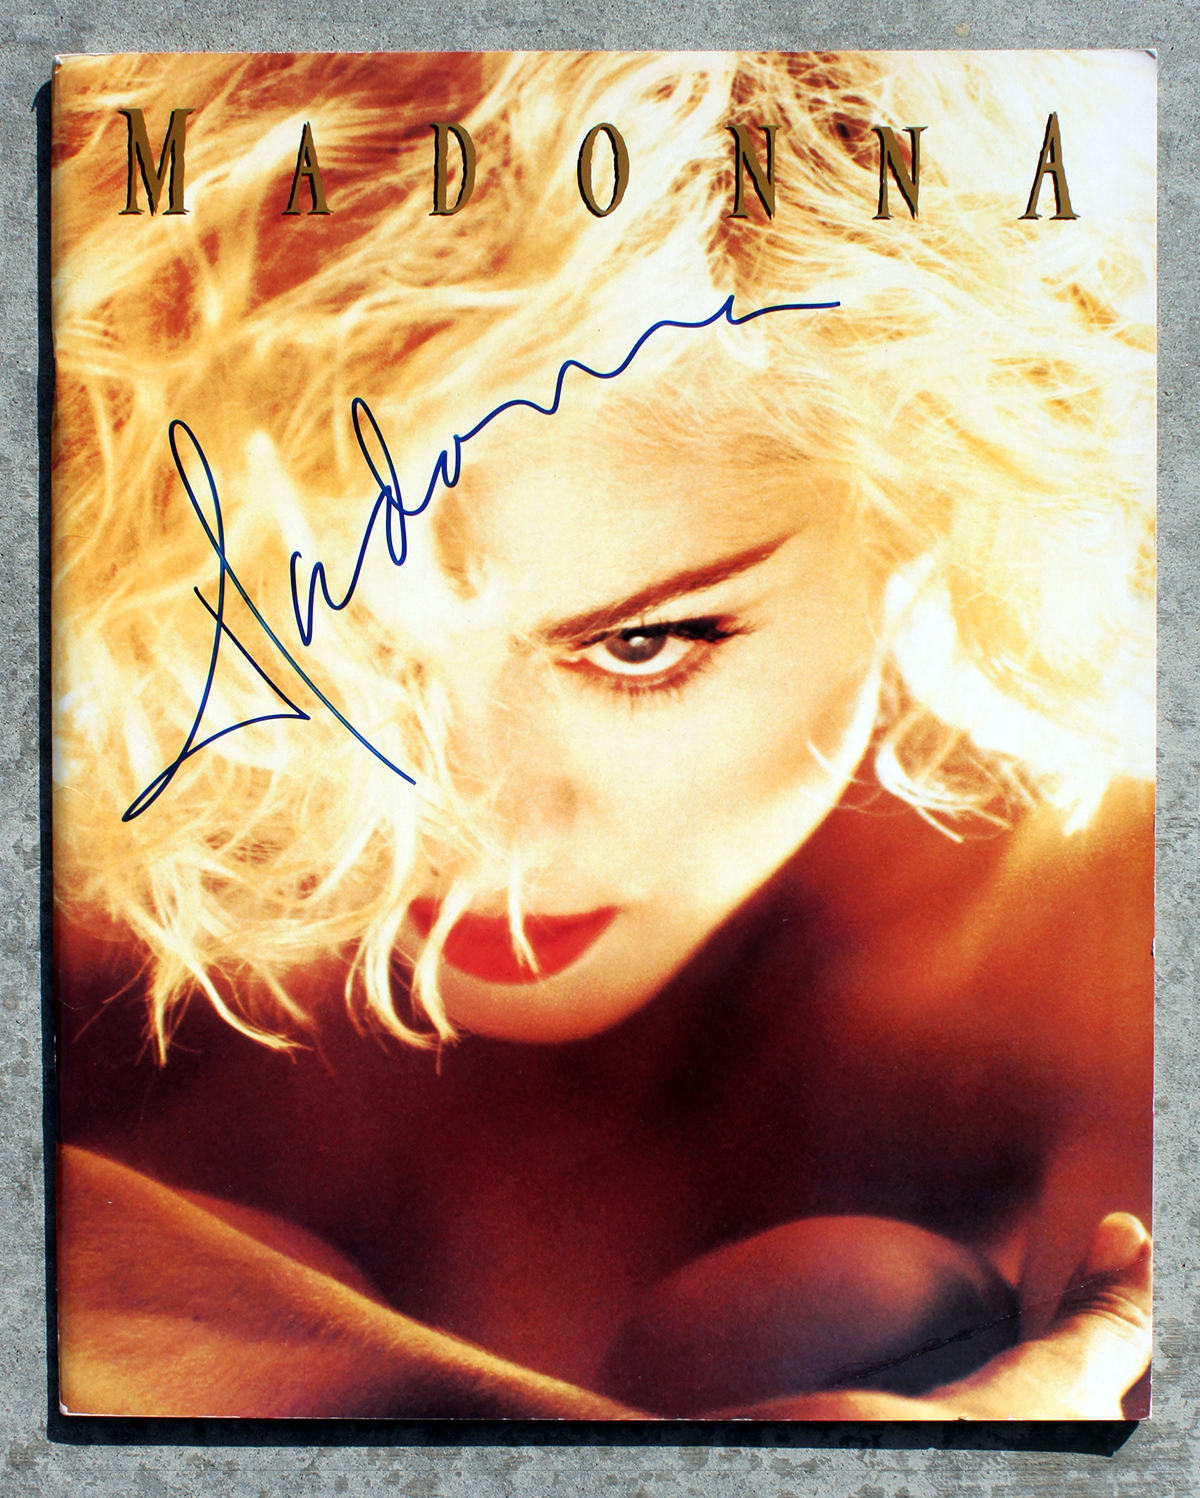 Tourbook - Madonna #1